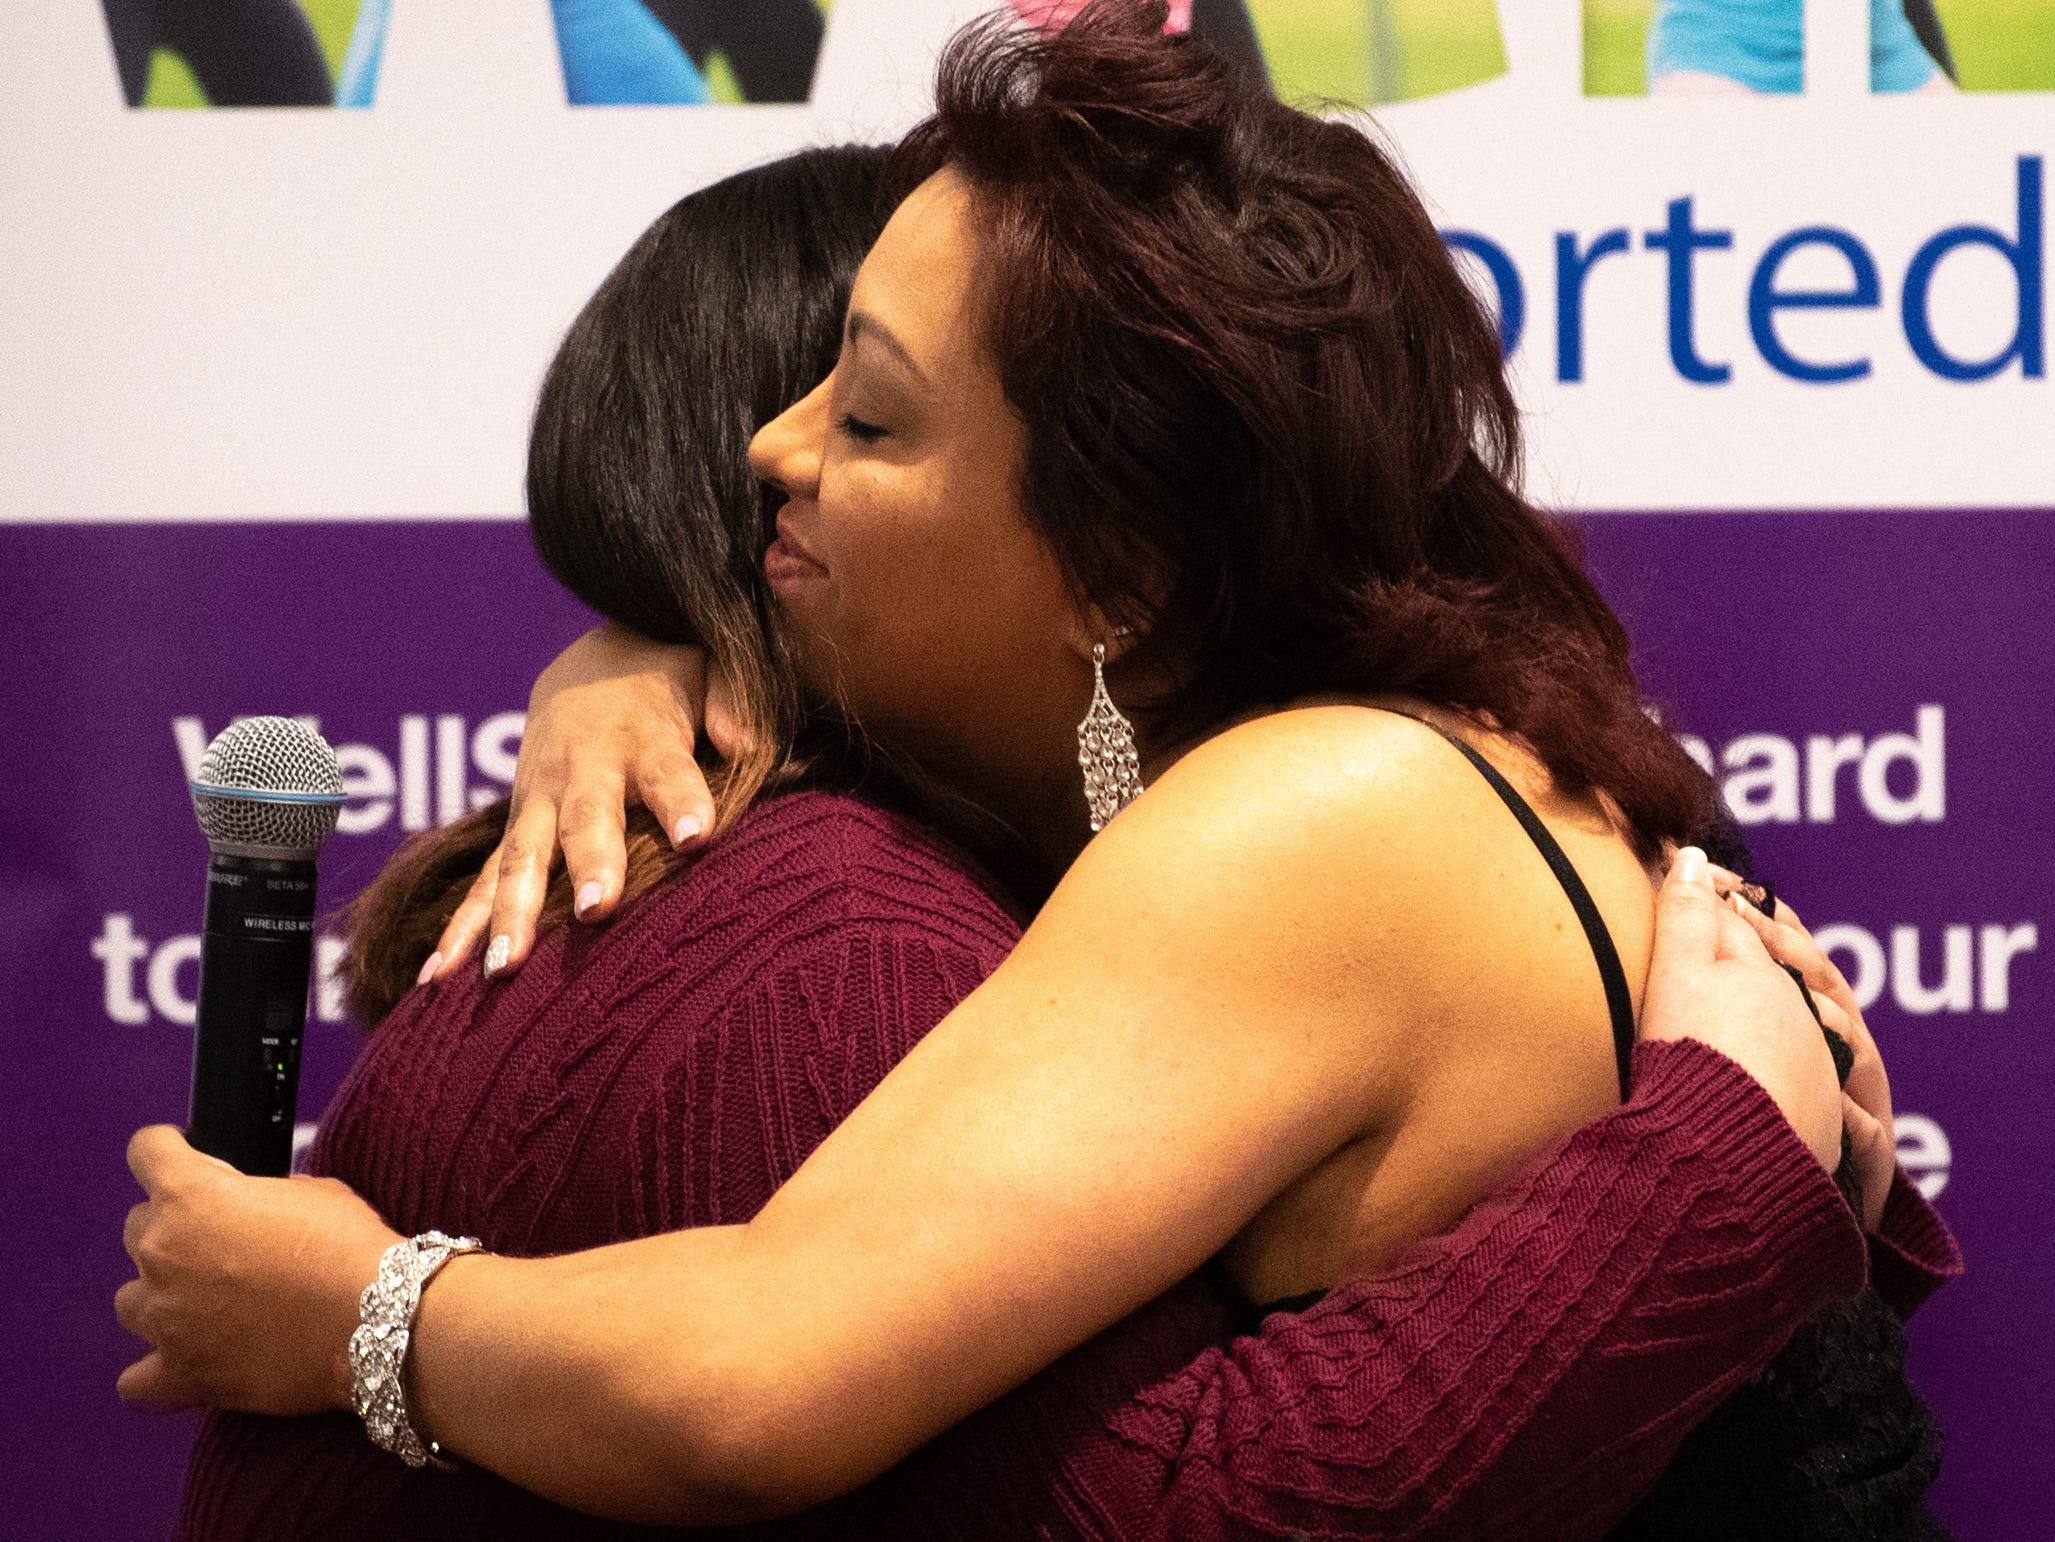 Paola Almonte (left) hugs the award presenter during the 2019 City of York Human Relations Commission Diversity Dinner at York College, January 9, 2019.